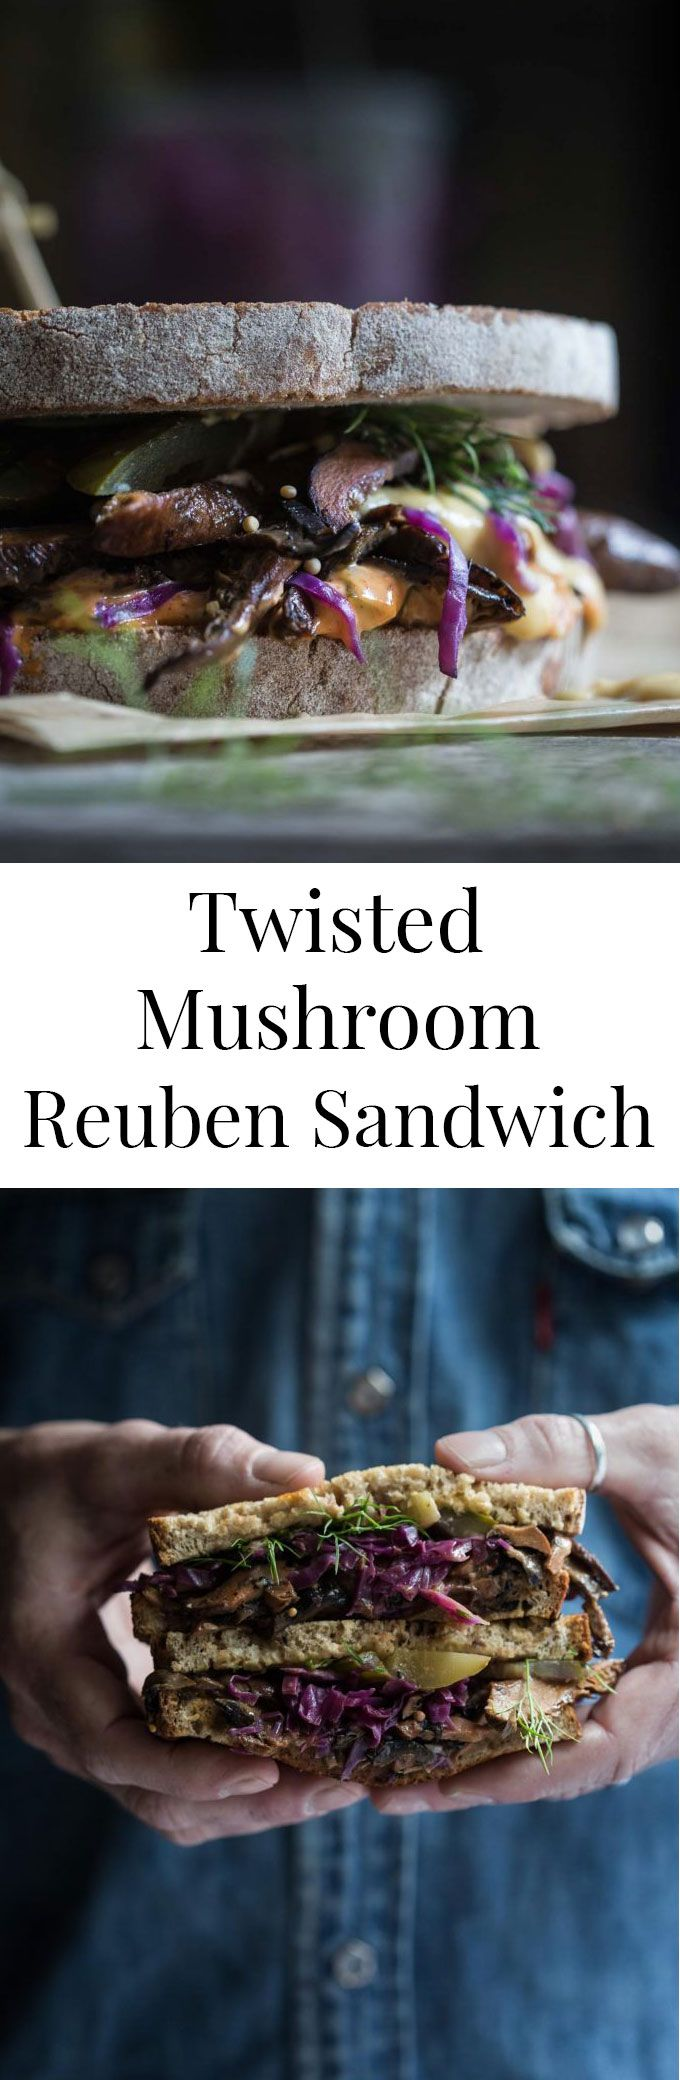 Sautéed spiced mushrooms, homemade red cabbage sauerkraut, Russian dressing and pickles pack a flavour punch in the Twisted Mushroom Reuben Sandwich.